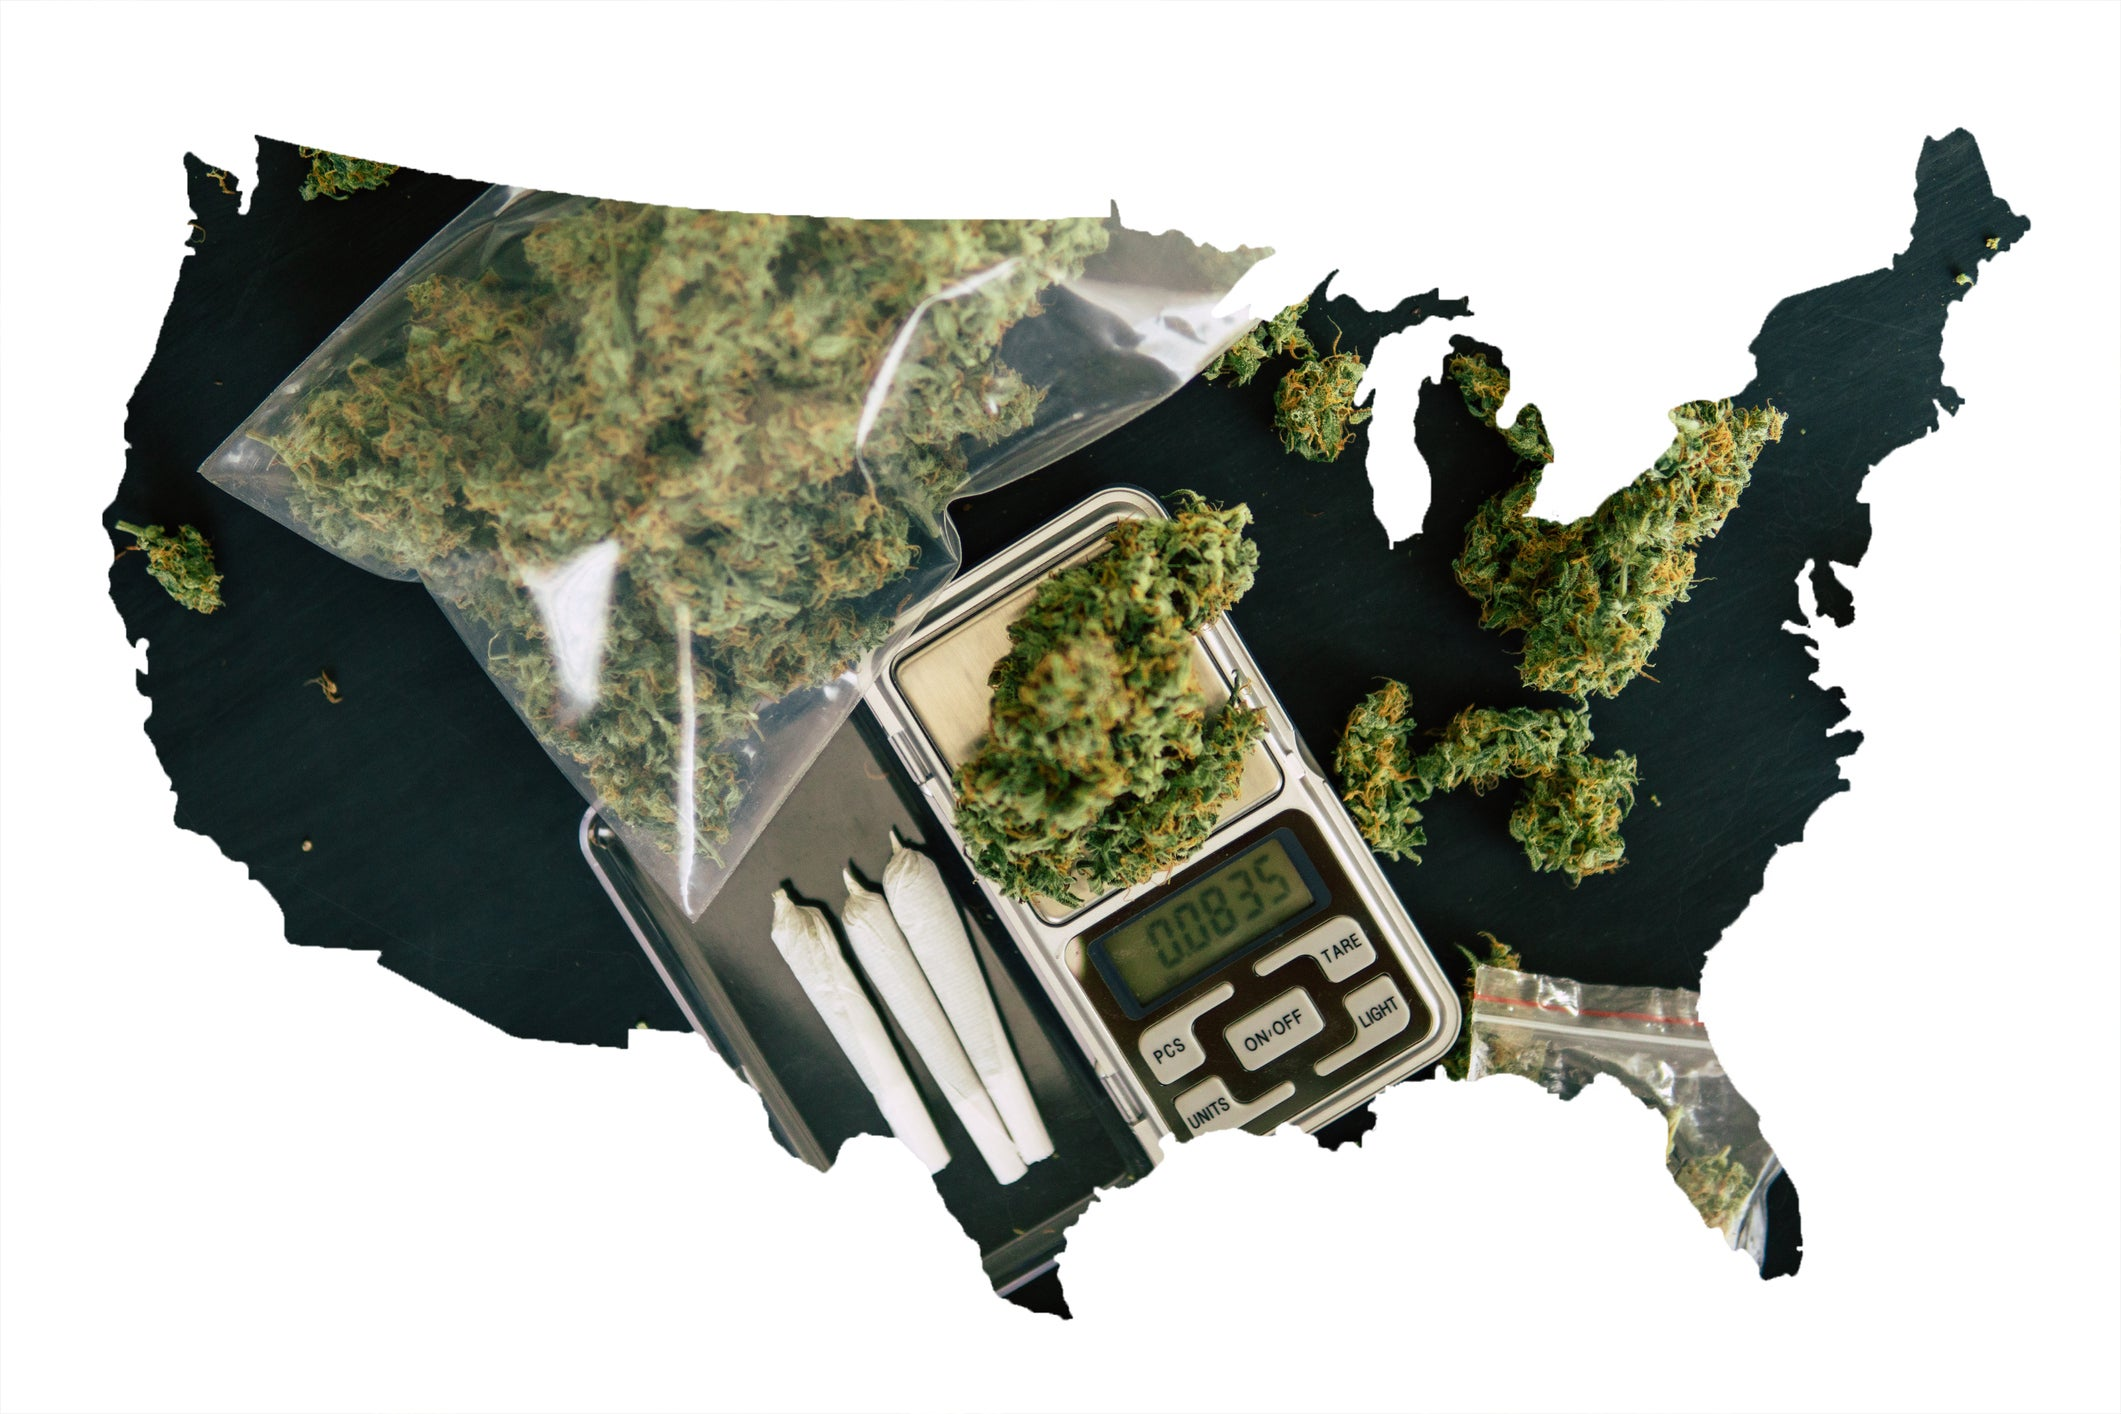 The Surprising Reason the U.S. May Be Reluctant to Legalize Marijuana | The Motley Fool